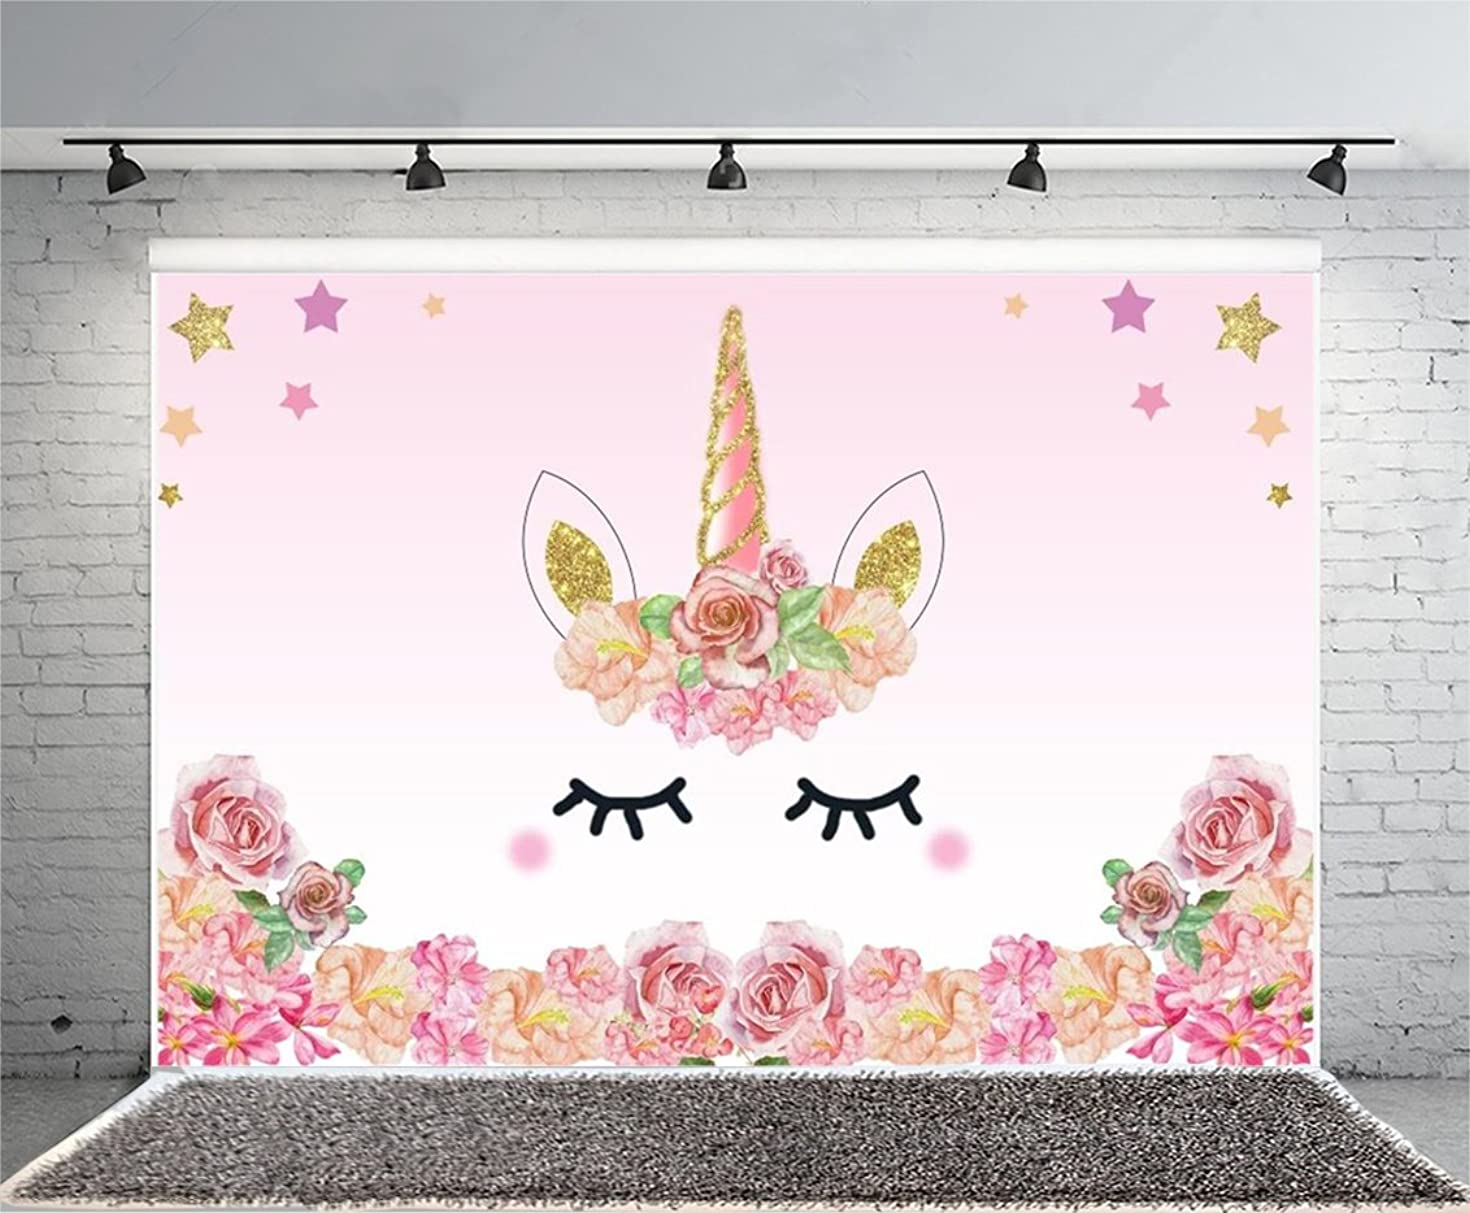 Laeacco 7x5FT Vinyl Backdrop Pink Unicorn Party Photography Background Roses Flowers Edge Pattern Sweet Cute Gold Star Background Birthday Baby Shower Ifant Toddlers Girls Photo Backdrop Studio Props